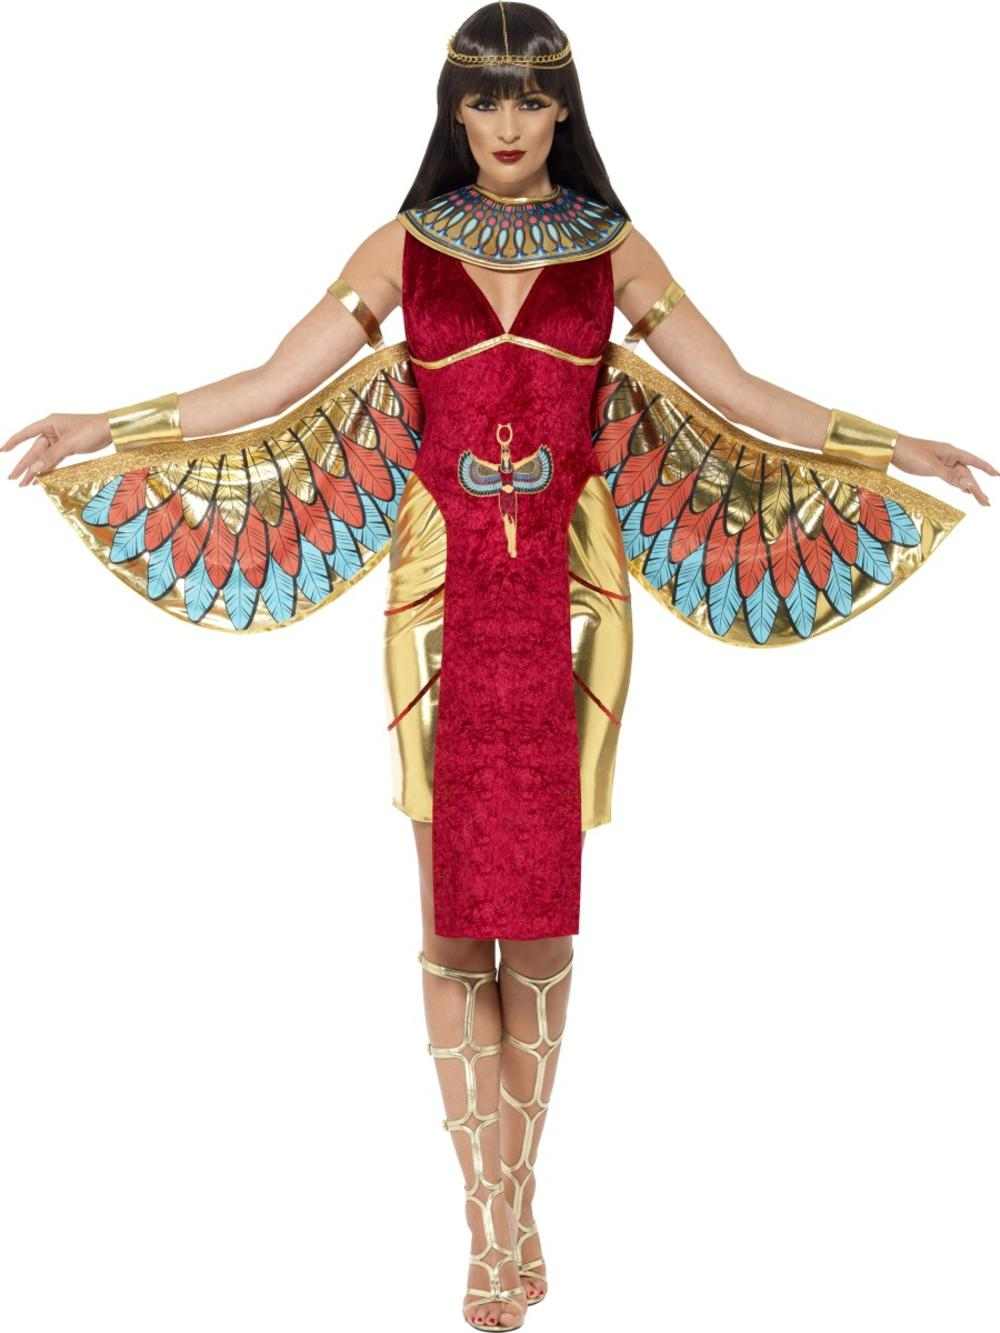 Cleopatra Queen Ladies Fancy Dress Ancient Egyptian Goddess Adult Costume Outfit